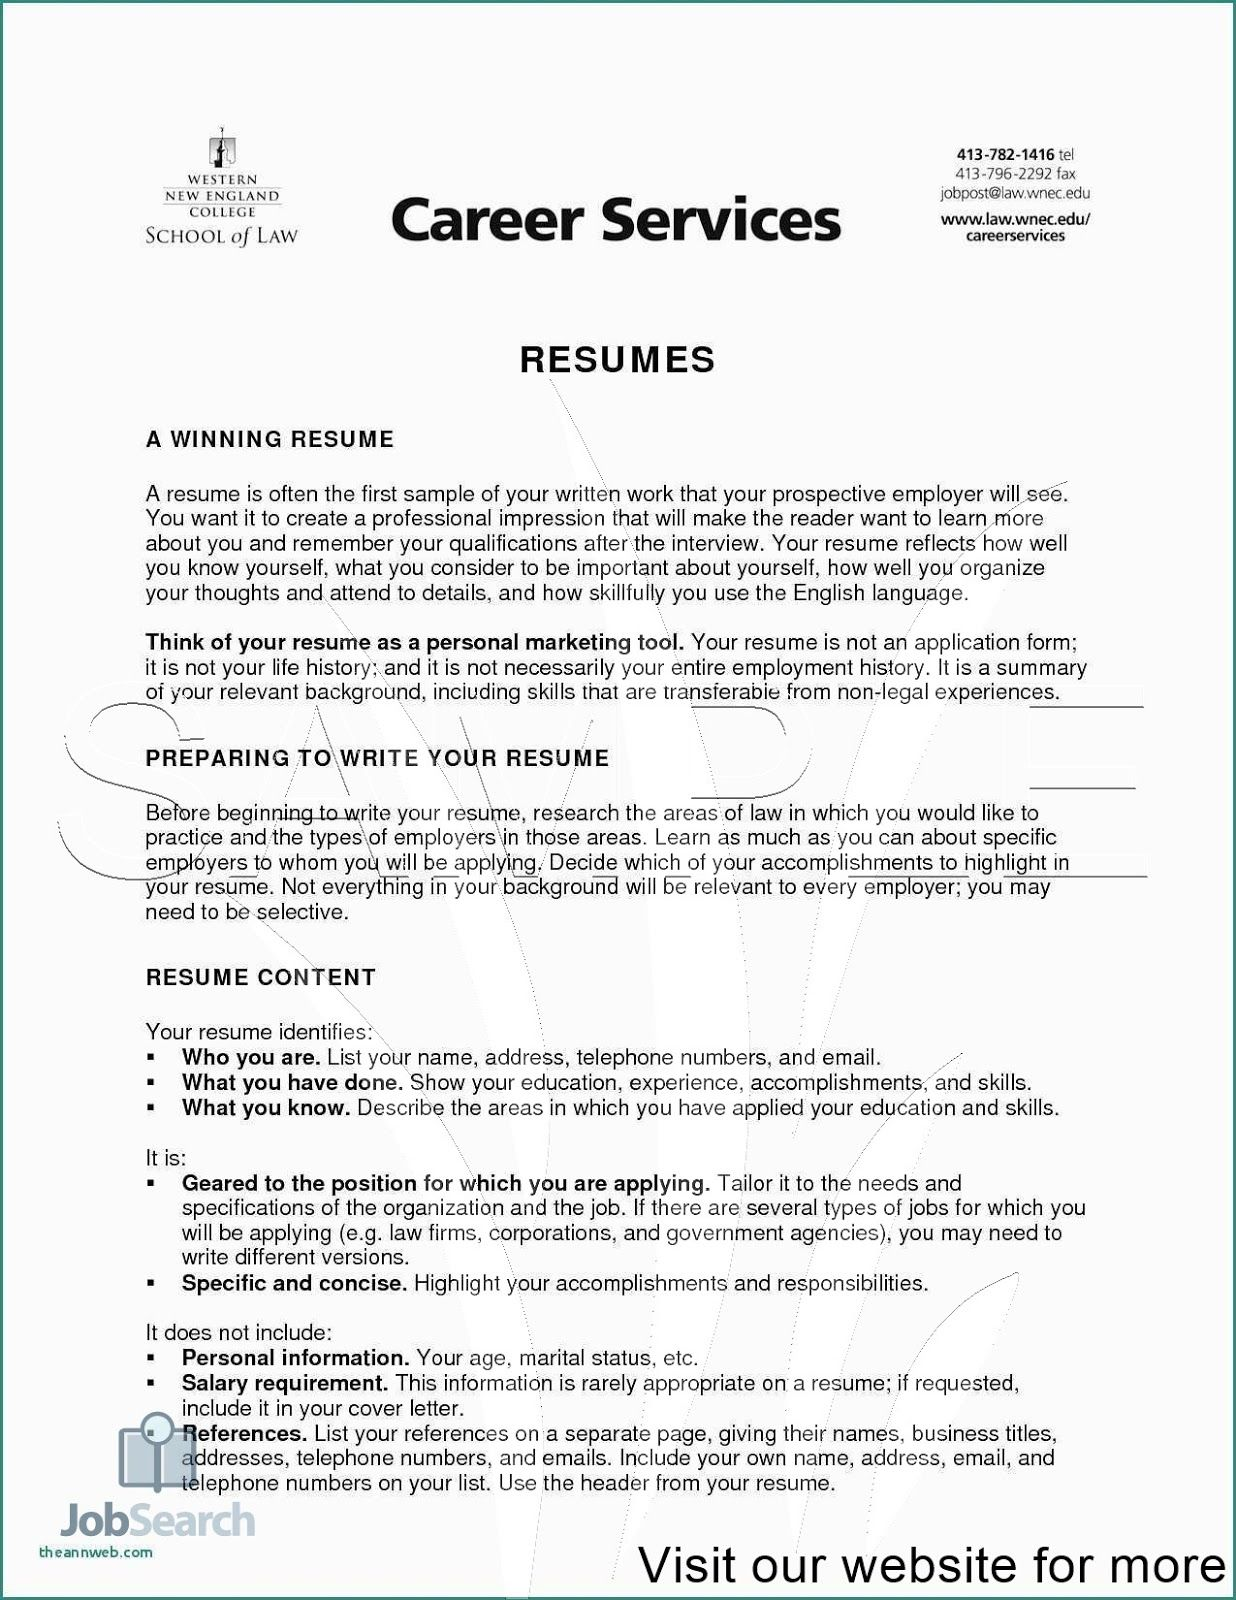 career services resume template free writing professional samples examples sample format Resume Sample Resume 2020 Format